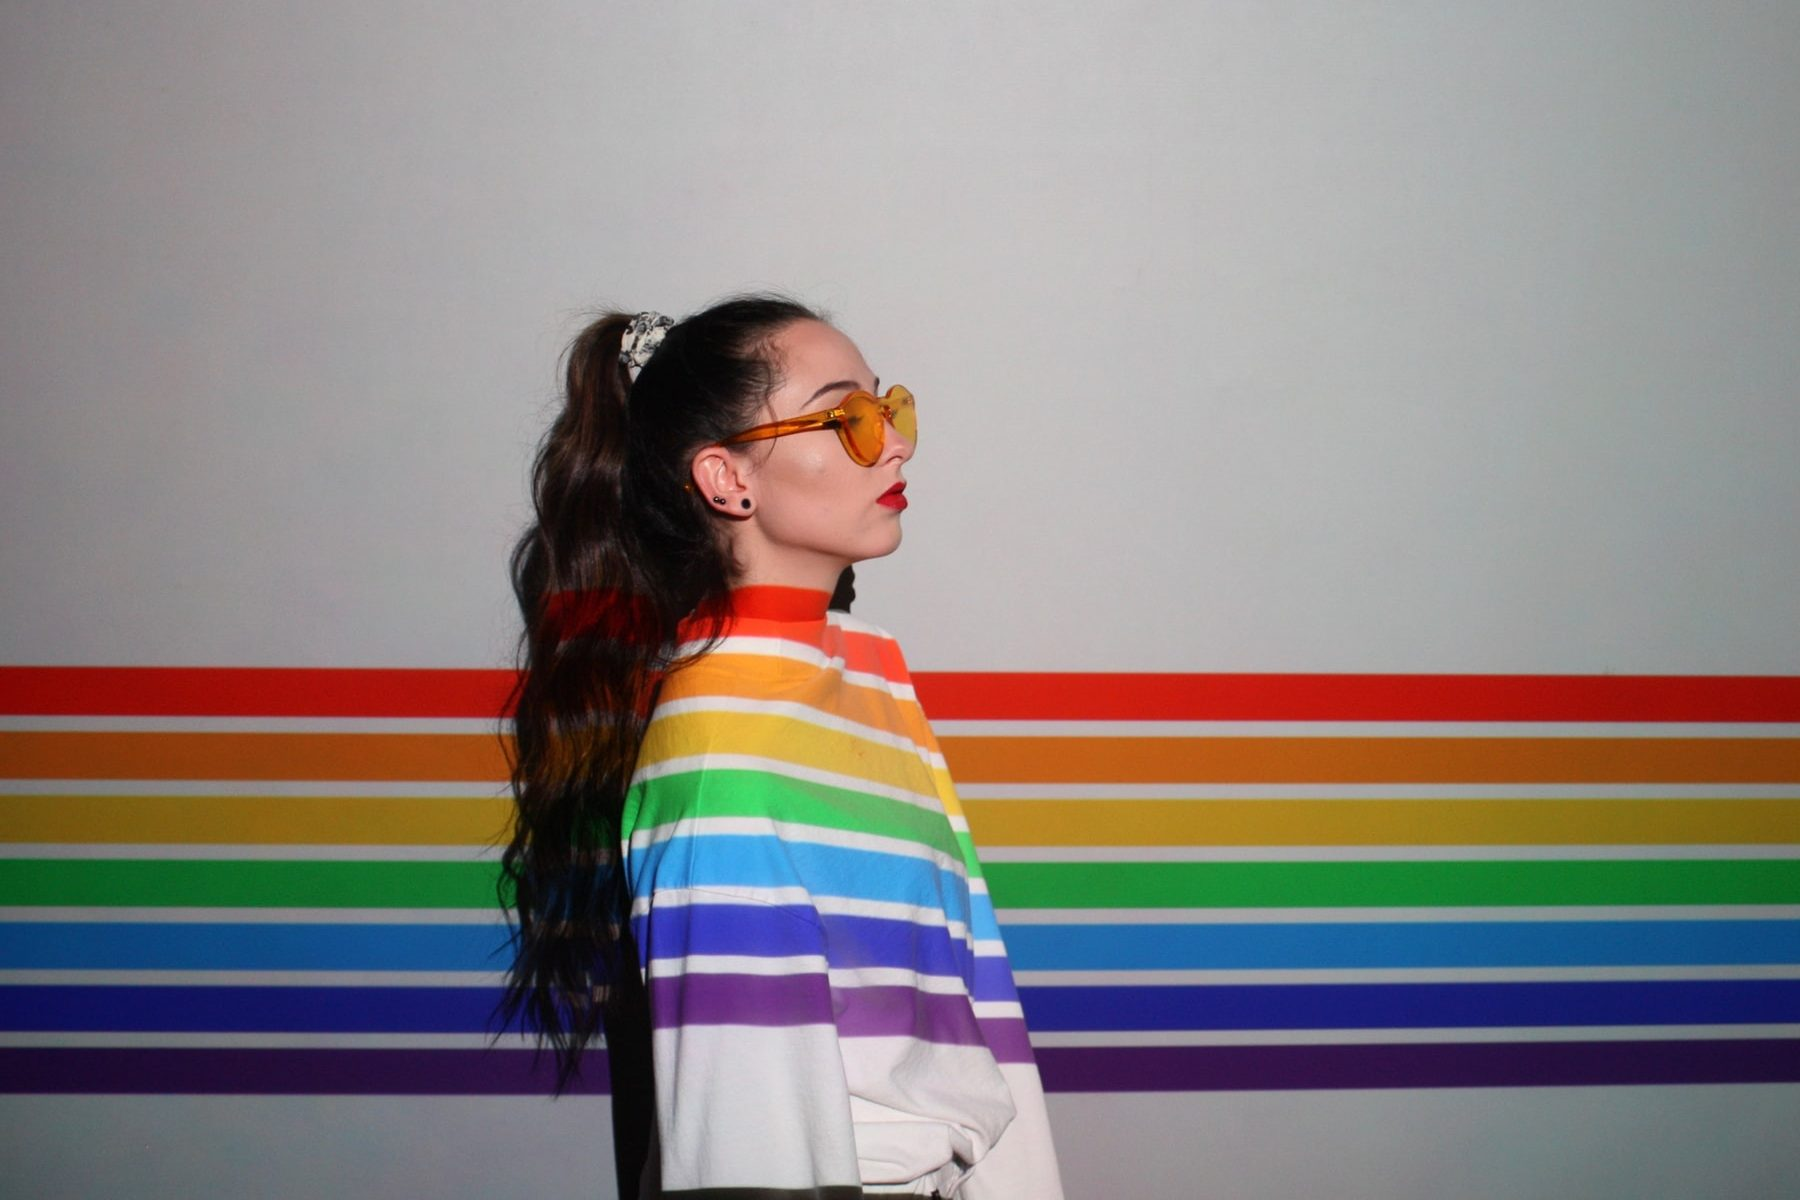 In an article about LGBTQ+ owned brands, a woman in a white shirt with rainbow stripes